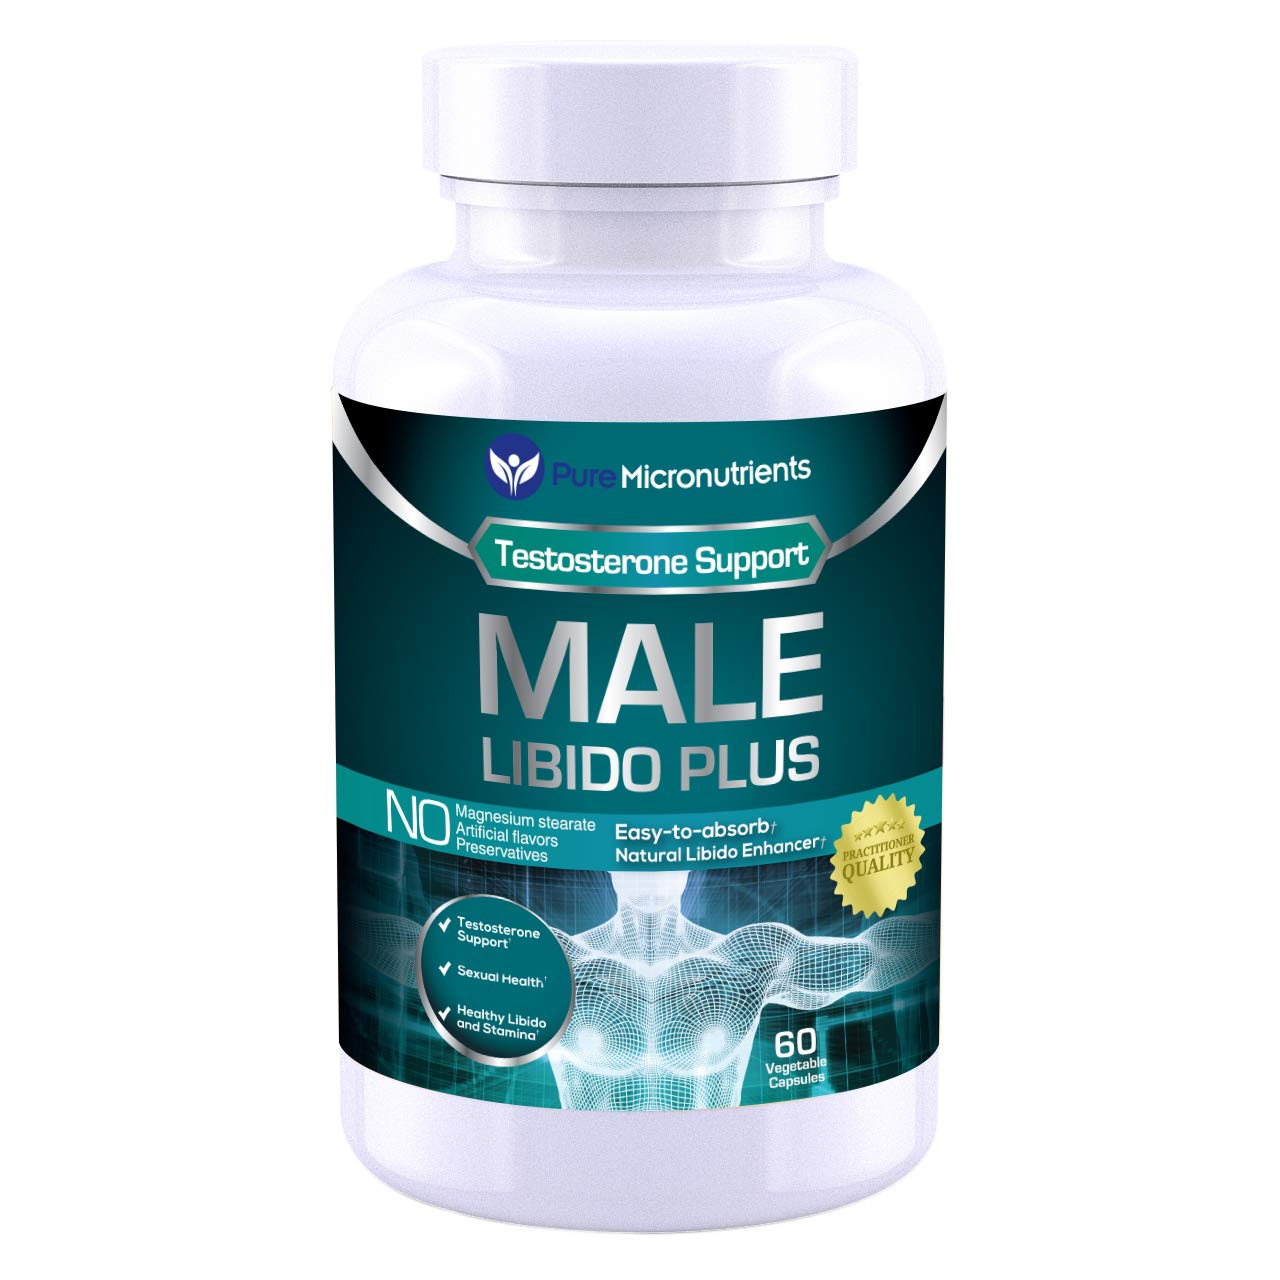 Male Libido Plus- Natural Testosterone Booster for Men that supports Fertility, Sexual Performance & Stamina. Maca, Ginseng, Sarsaparilla, Muira Puama & Tongkat Ali - Pure Micronutrients